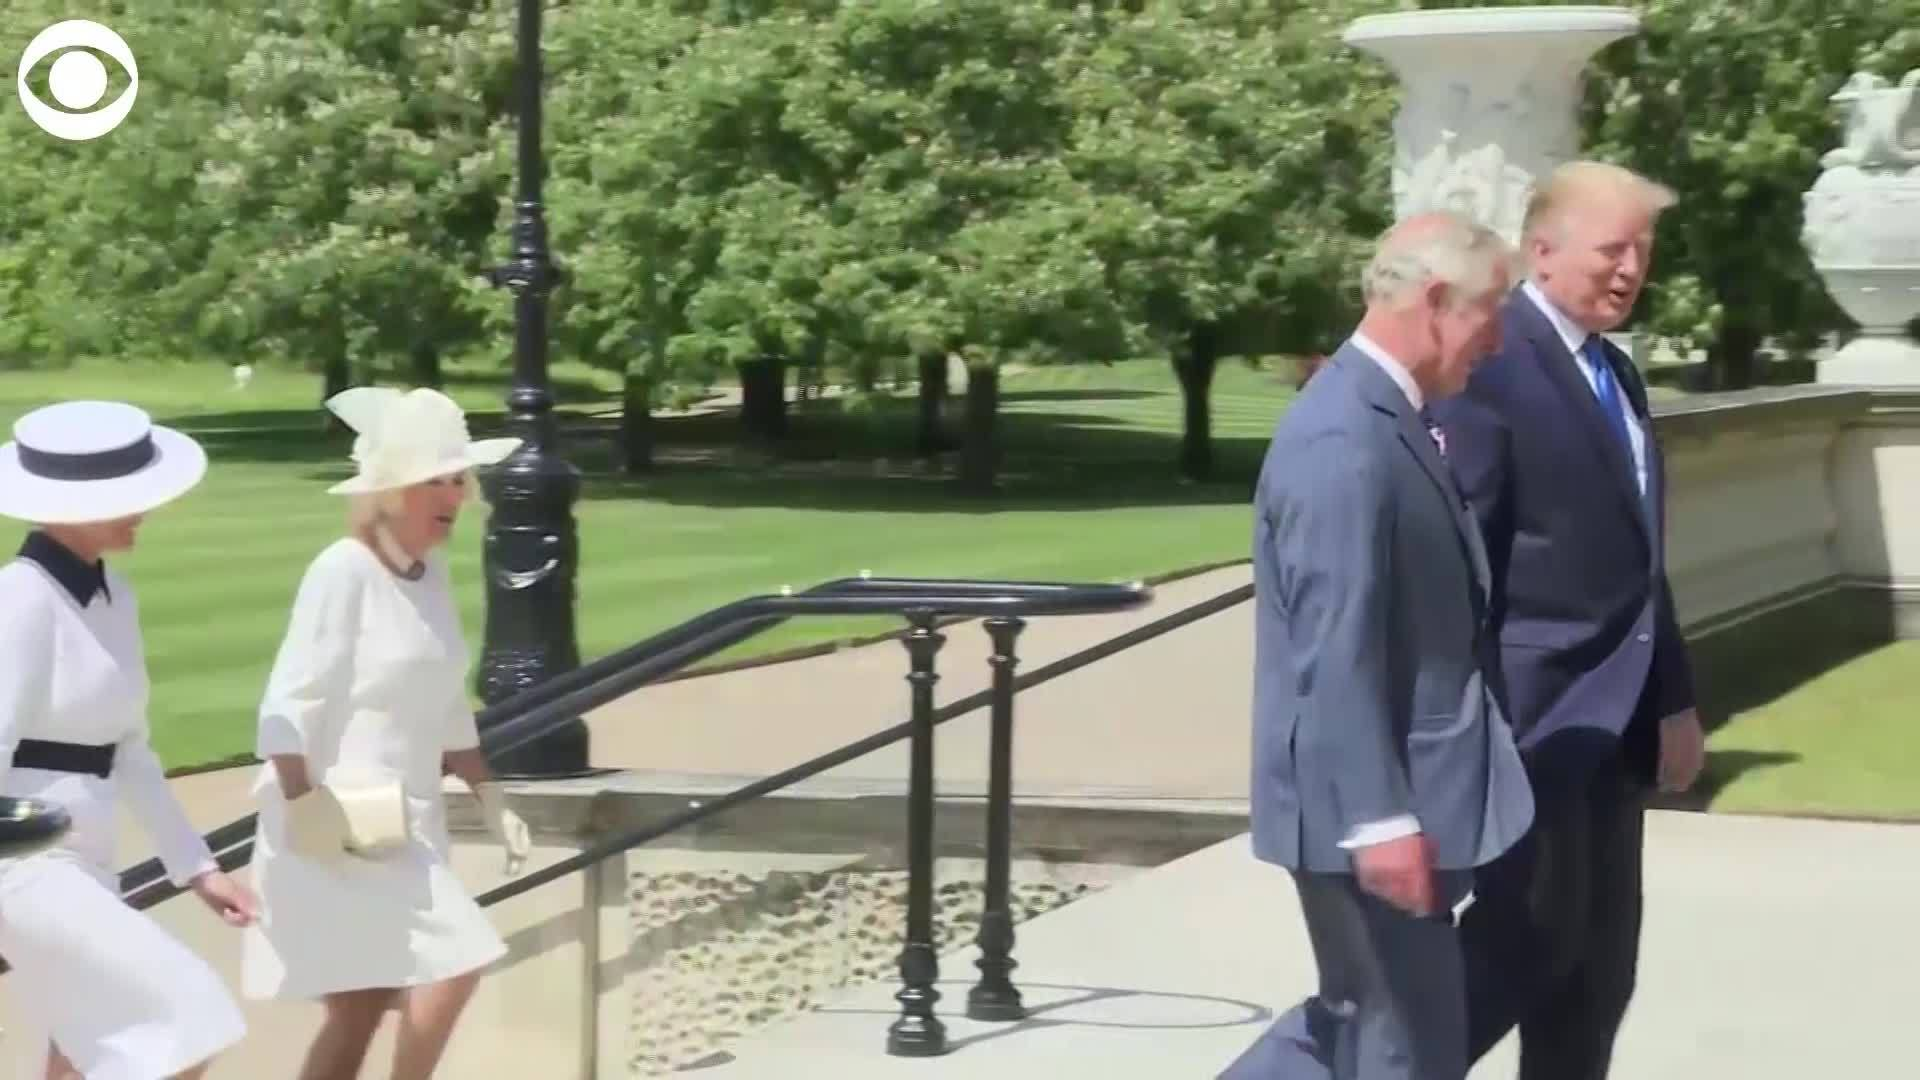 WEB EXTRA President Trump meets Queen